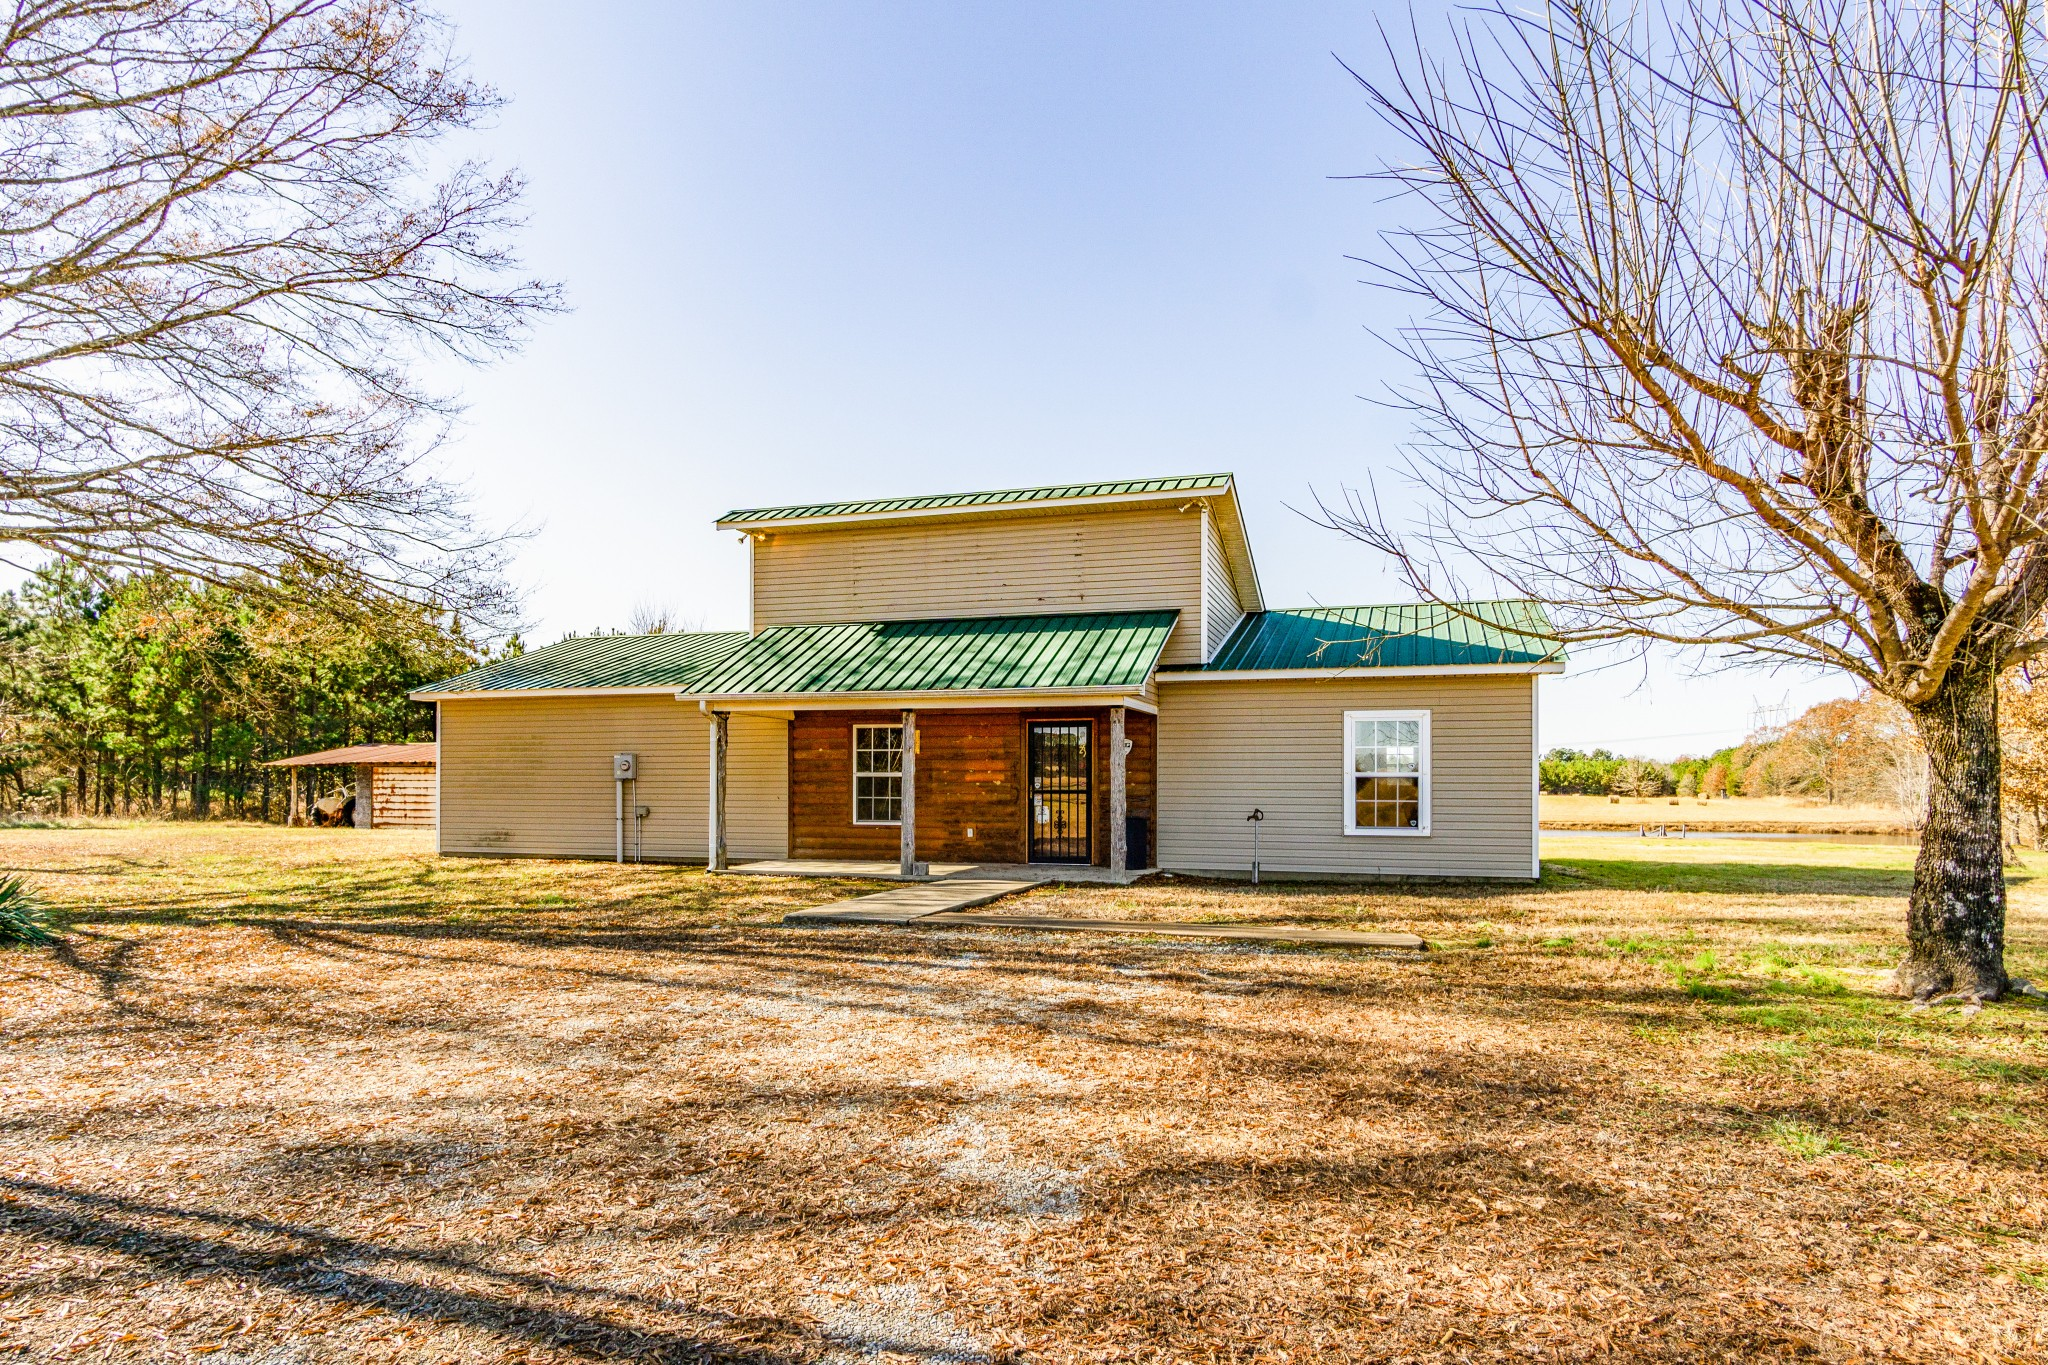 4188 Summertown Hwy, Summertown, TN 38483 - Summertown, TN real estate listing